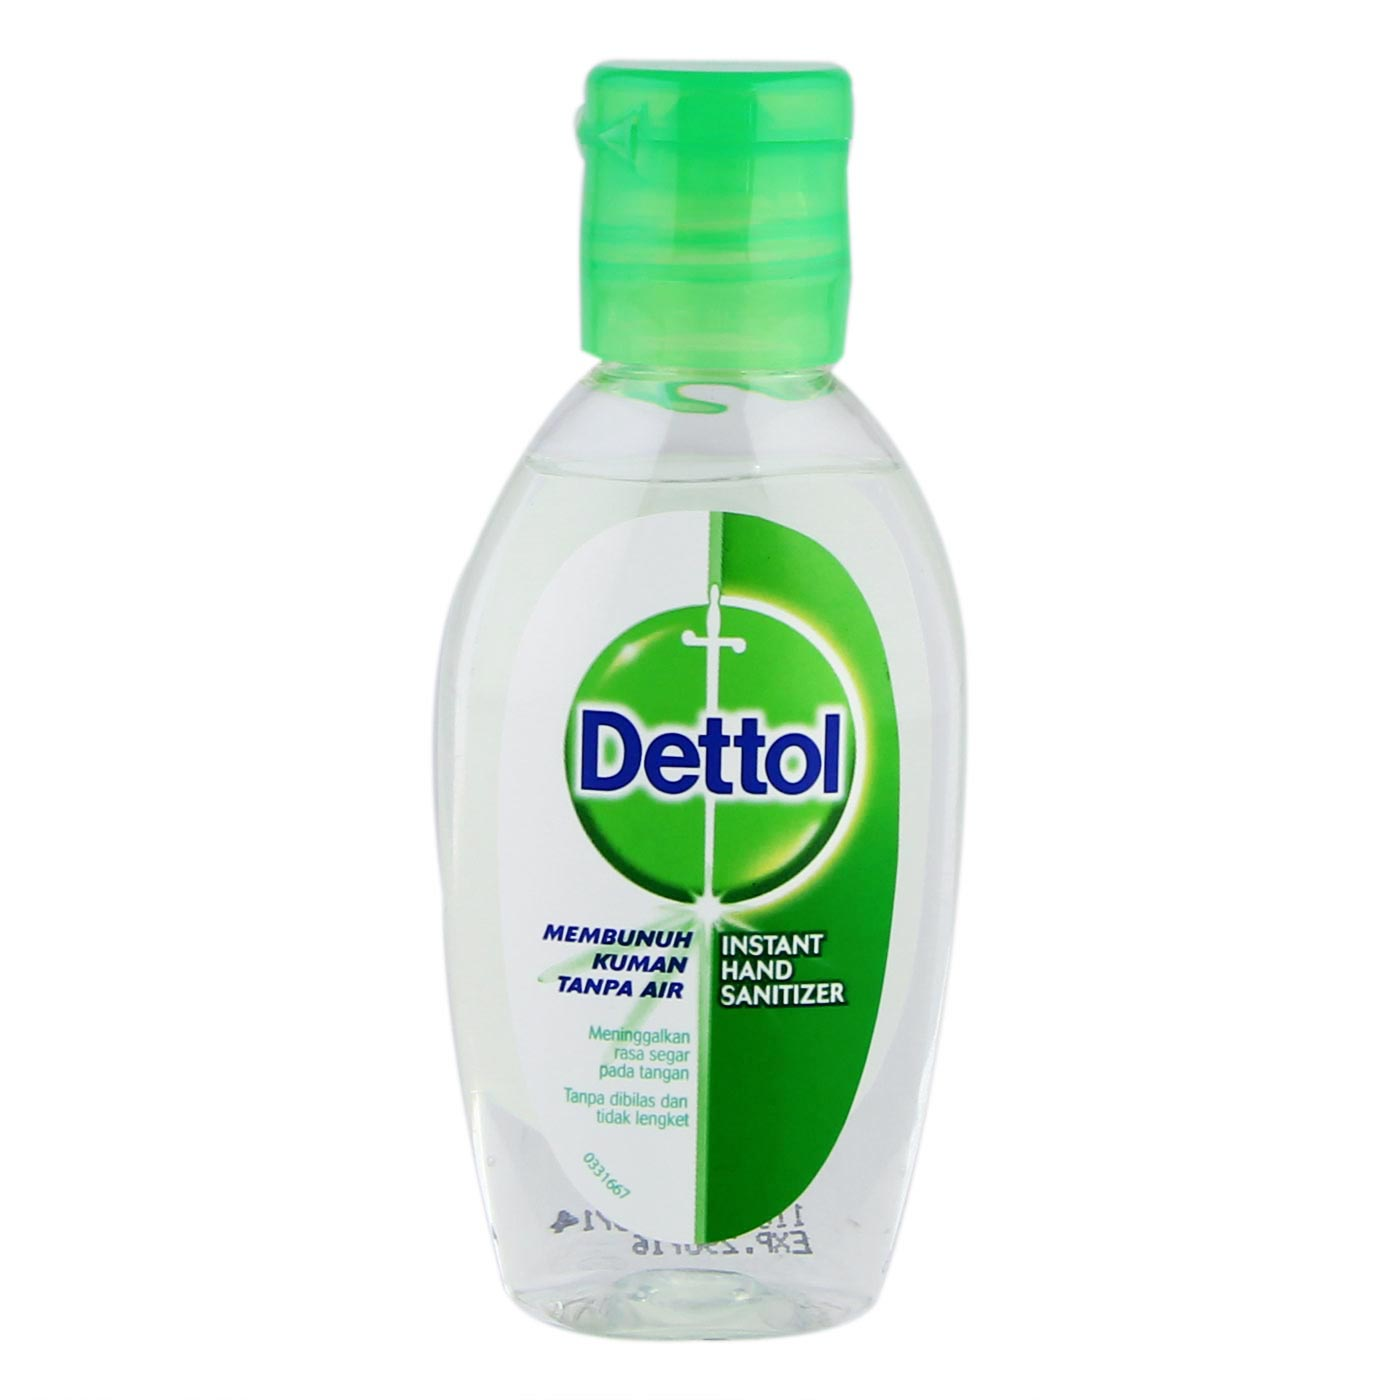 Dettol Hand Sanitizer Reguler (50mL)